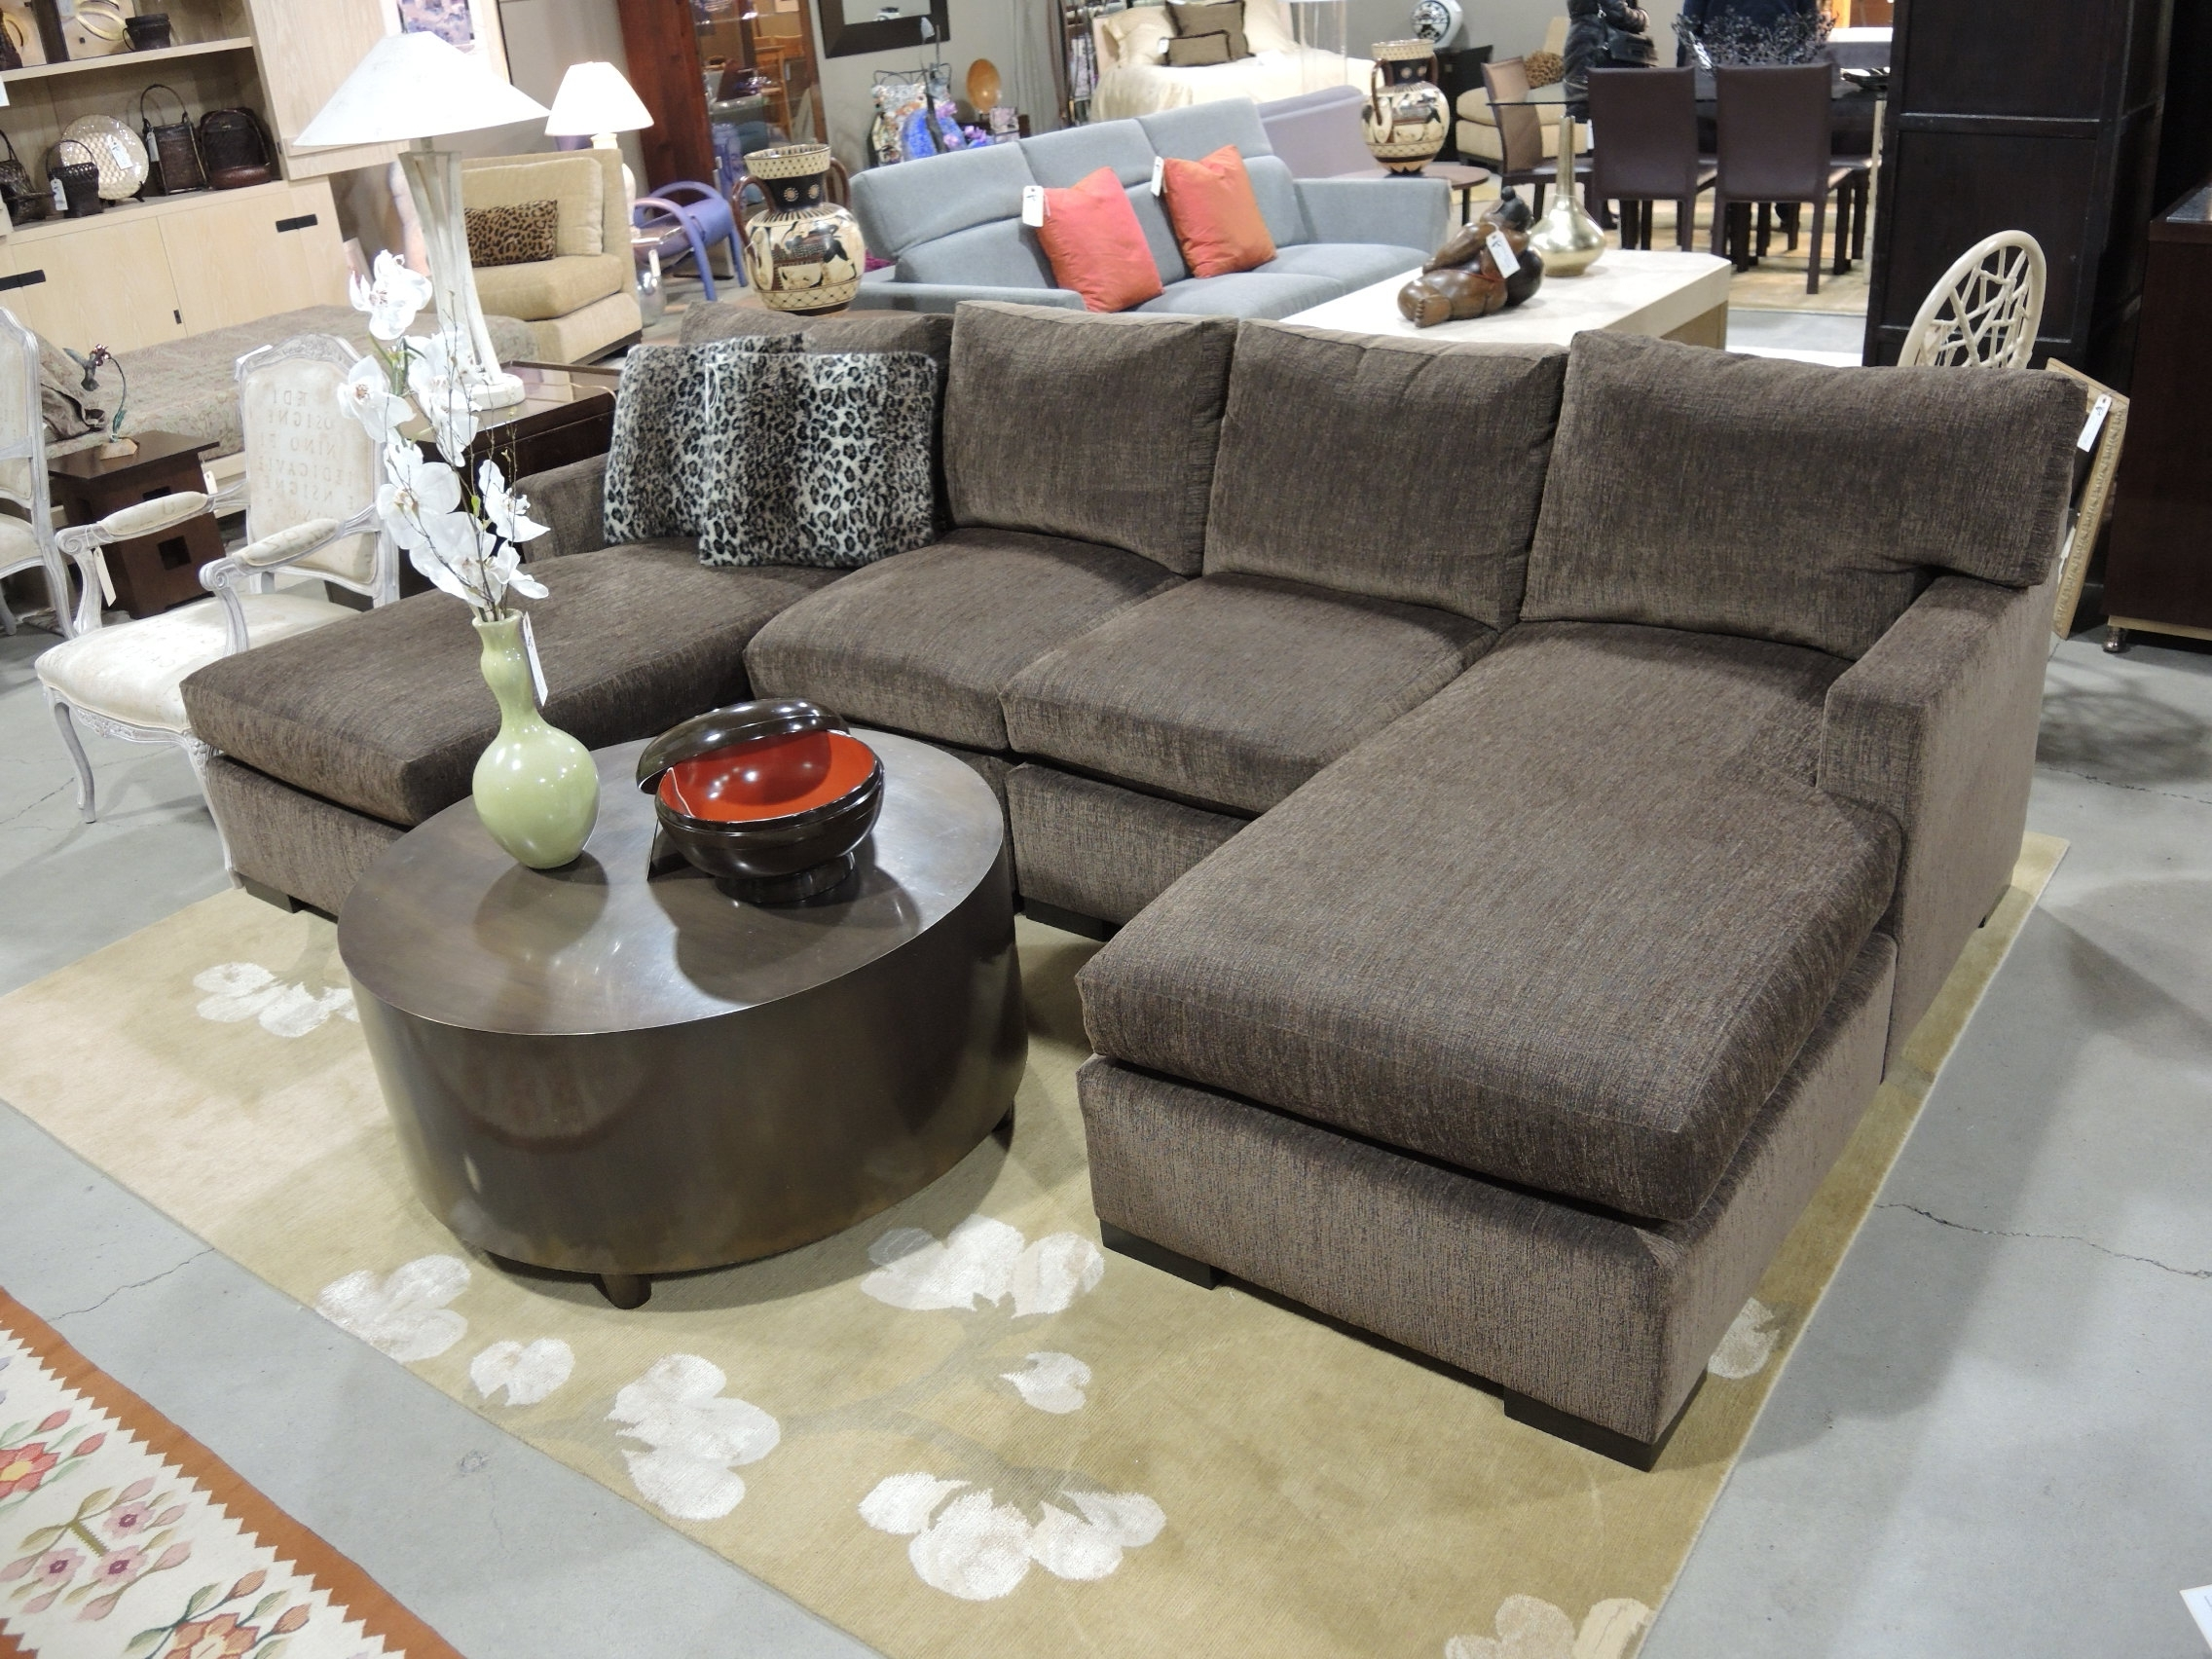 Latest Double Chaise Sectionals Intended For Small Double Chaise Sectional Sofa With Leopard Pillows And Round (View 4 of 15)